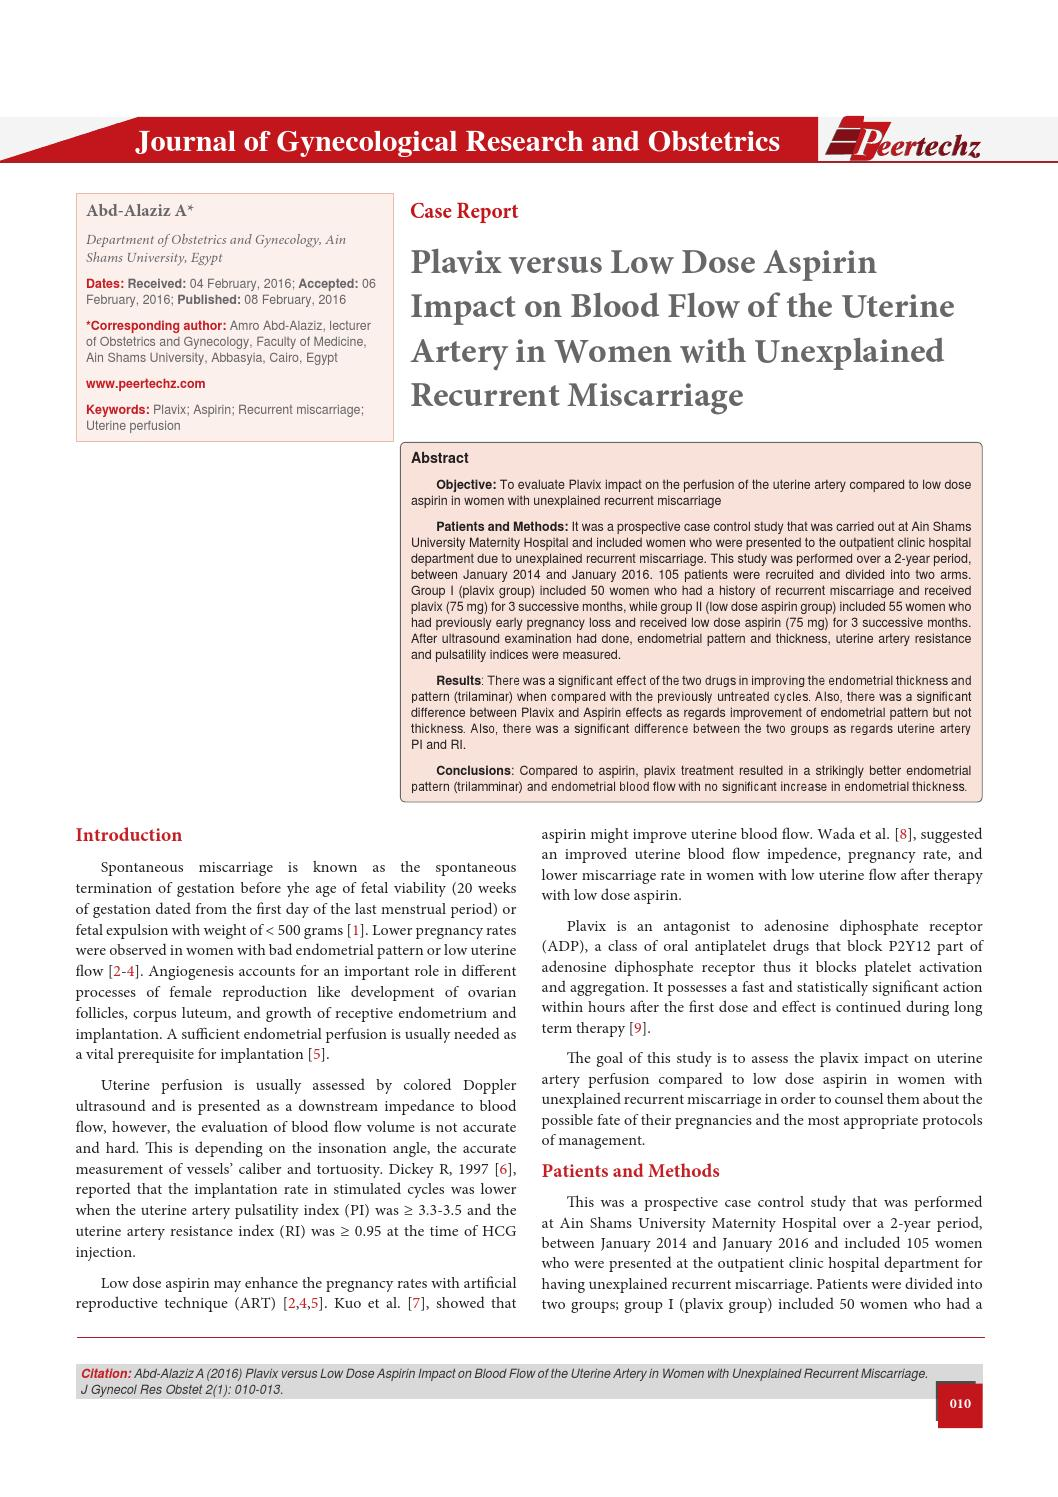 plavix case study Plavix plus aspirin a risky combination  topol has since left the clinic and is at case  they gave everyone in the study low daily doses of aspirin plus plavix.